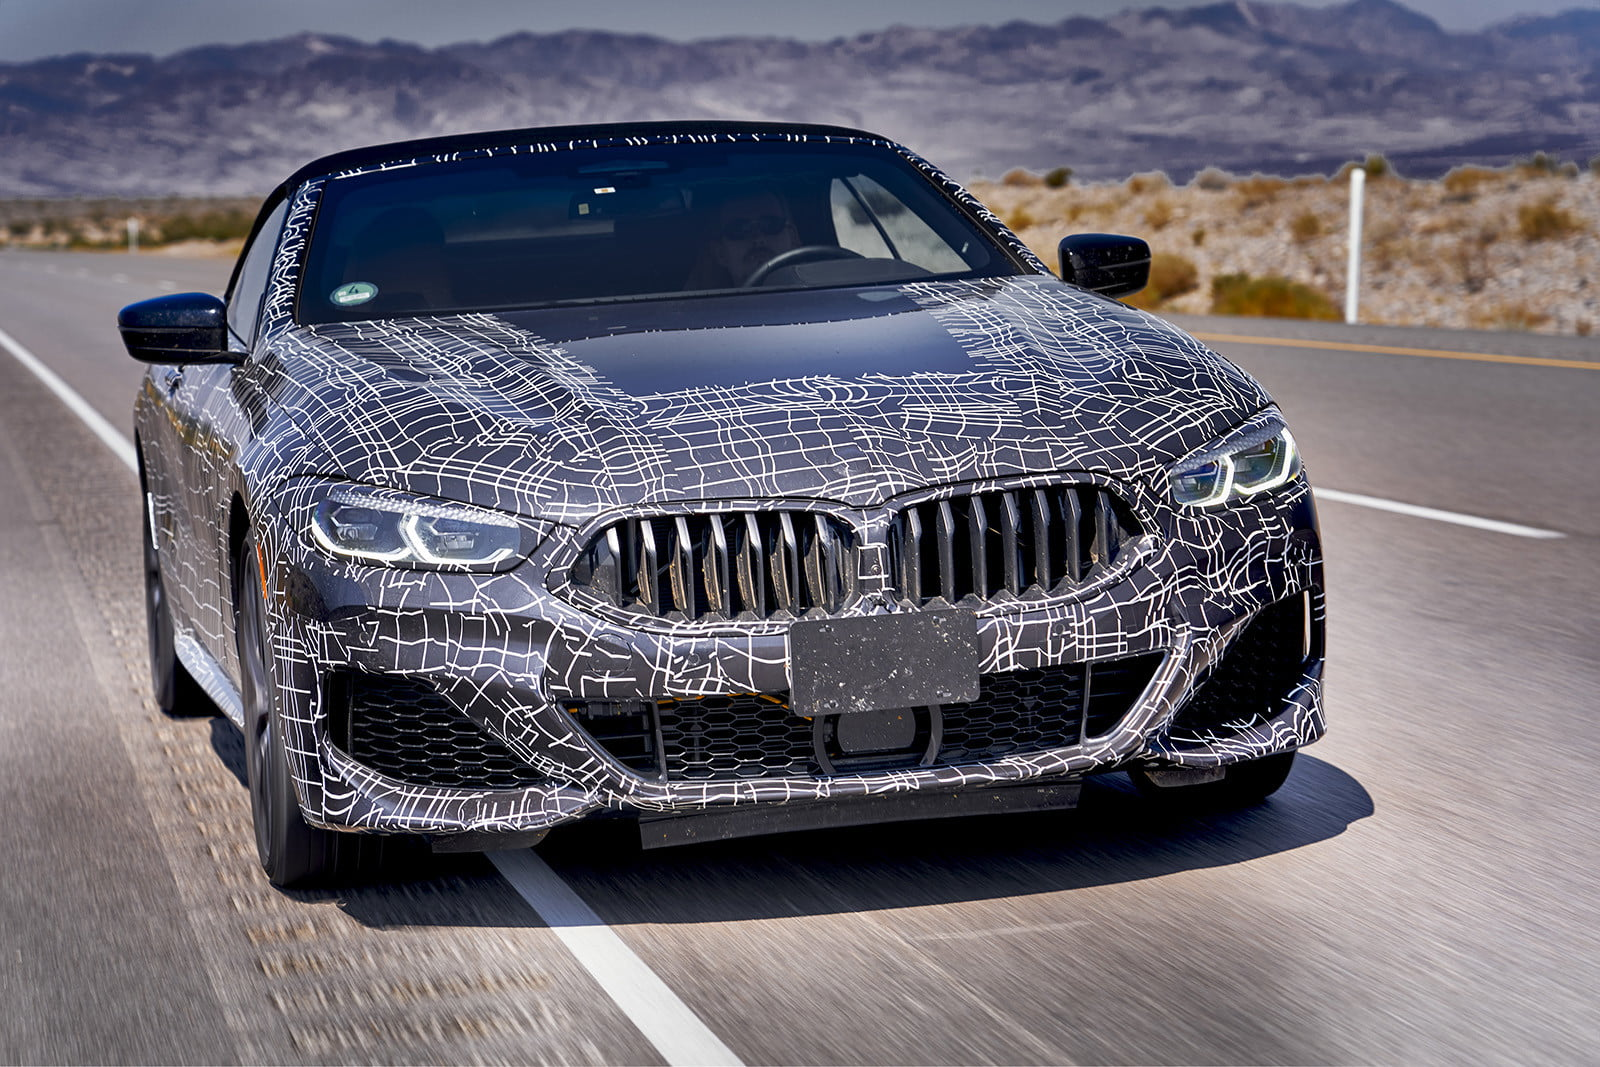 Bmw Tests Whether Its 8 Series Convertible Can Stand The Heat In Death Valley